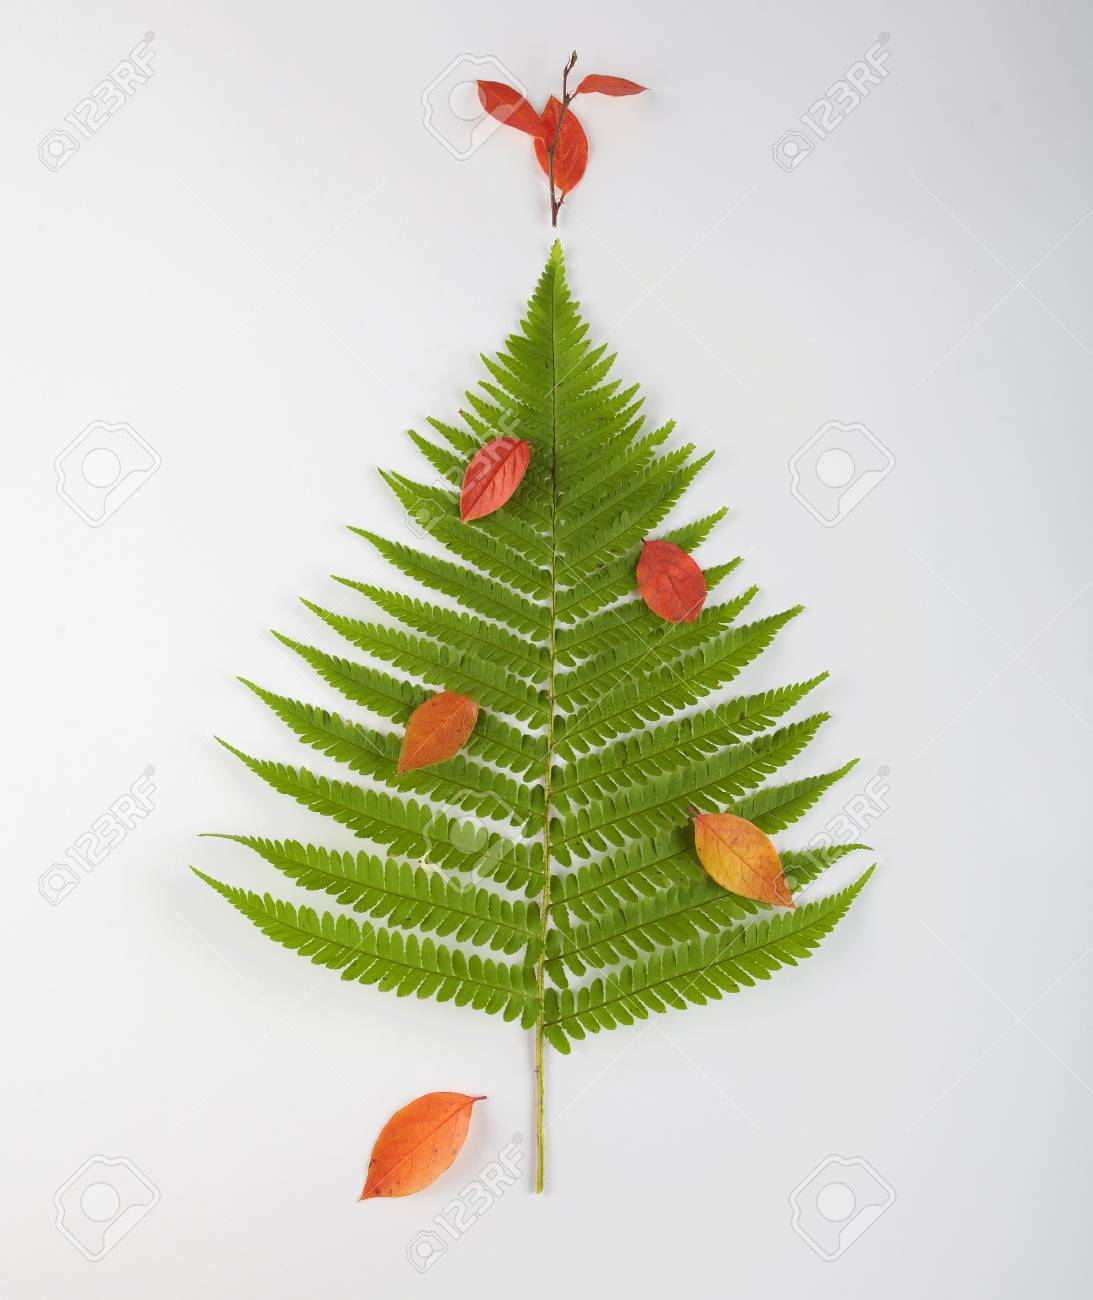 Christmas Tree Made Of Fern Leaves And Branches Holiday Concept